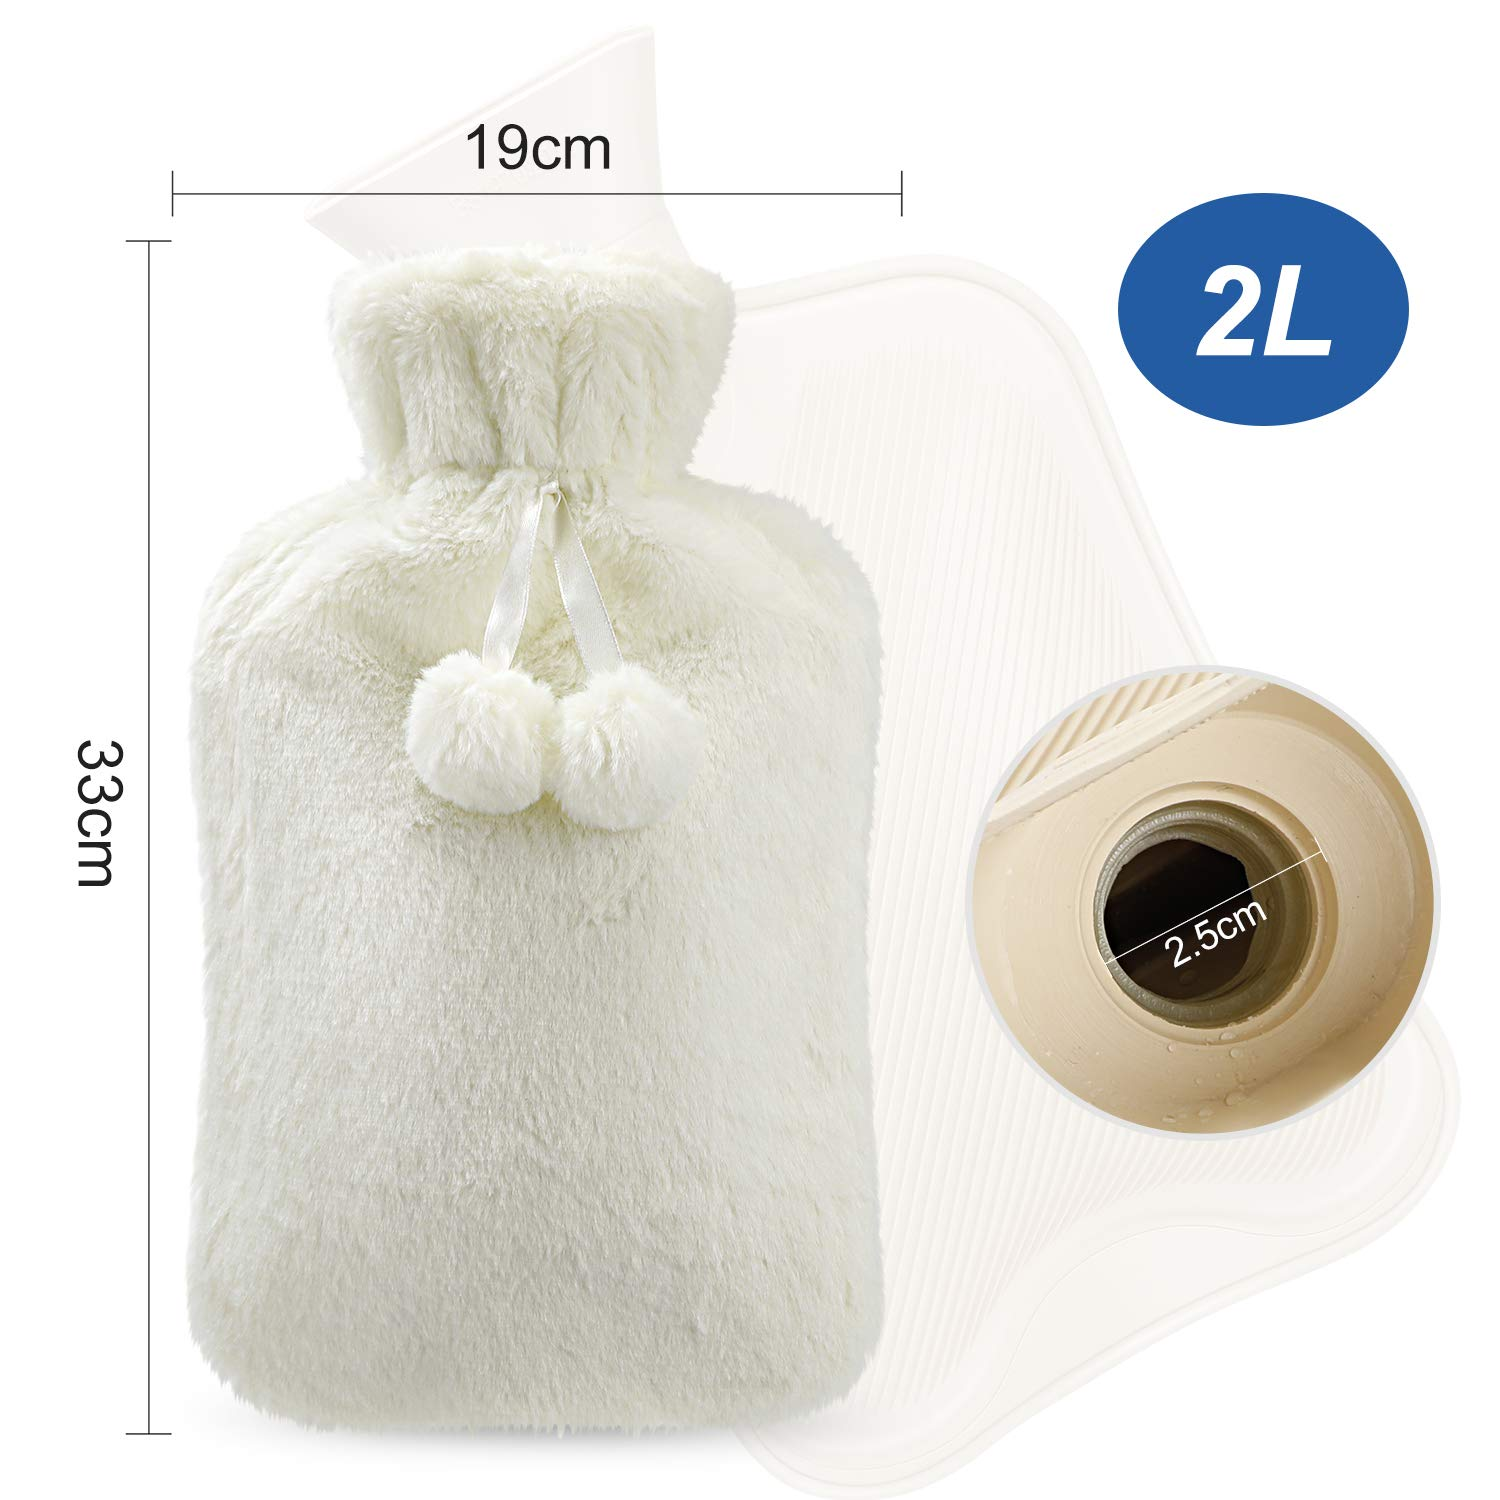 2 Litre Hot Water Bottle Valentines Day Heat Up and Refreezable Cold Pack Reusable Christmas Great Gift for Birthday with Cosy Fluffy Cover Portable